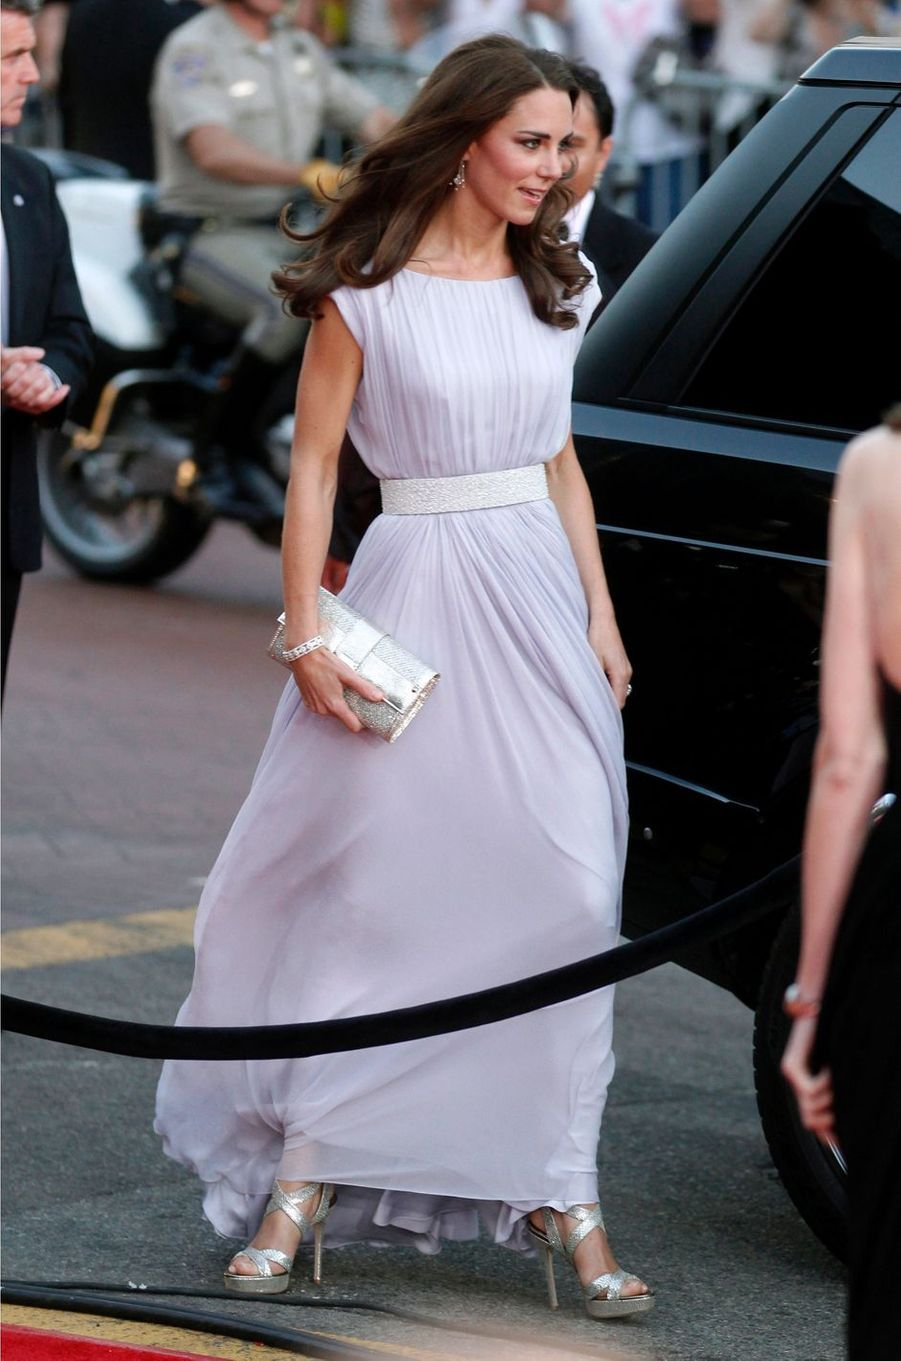 La duchesse de Cambridge, née Kate Middleton, à Hollywood, le 9 juillet 2011